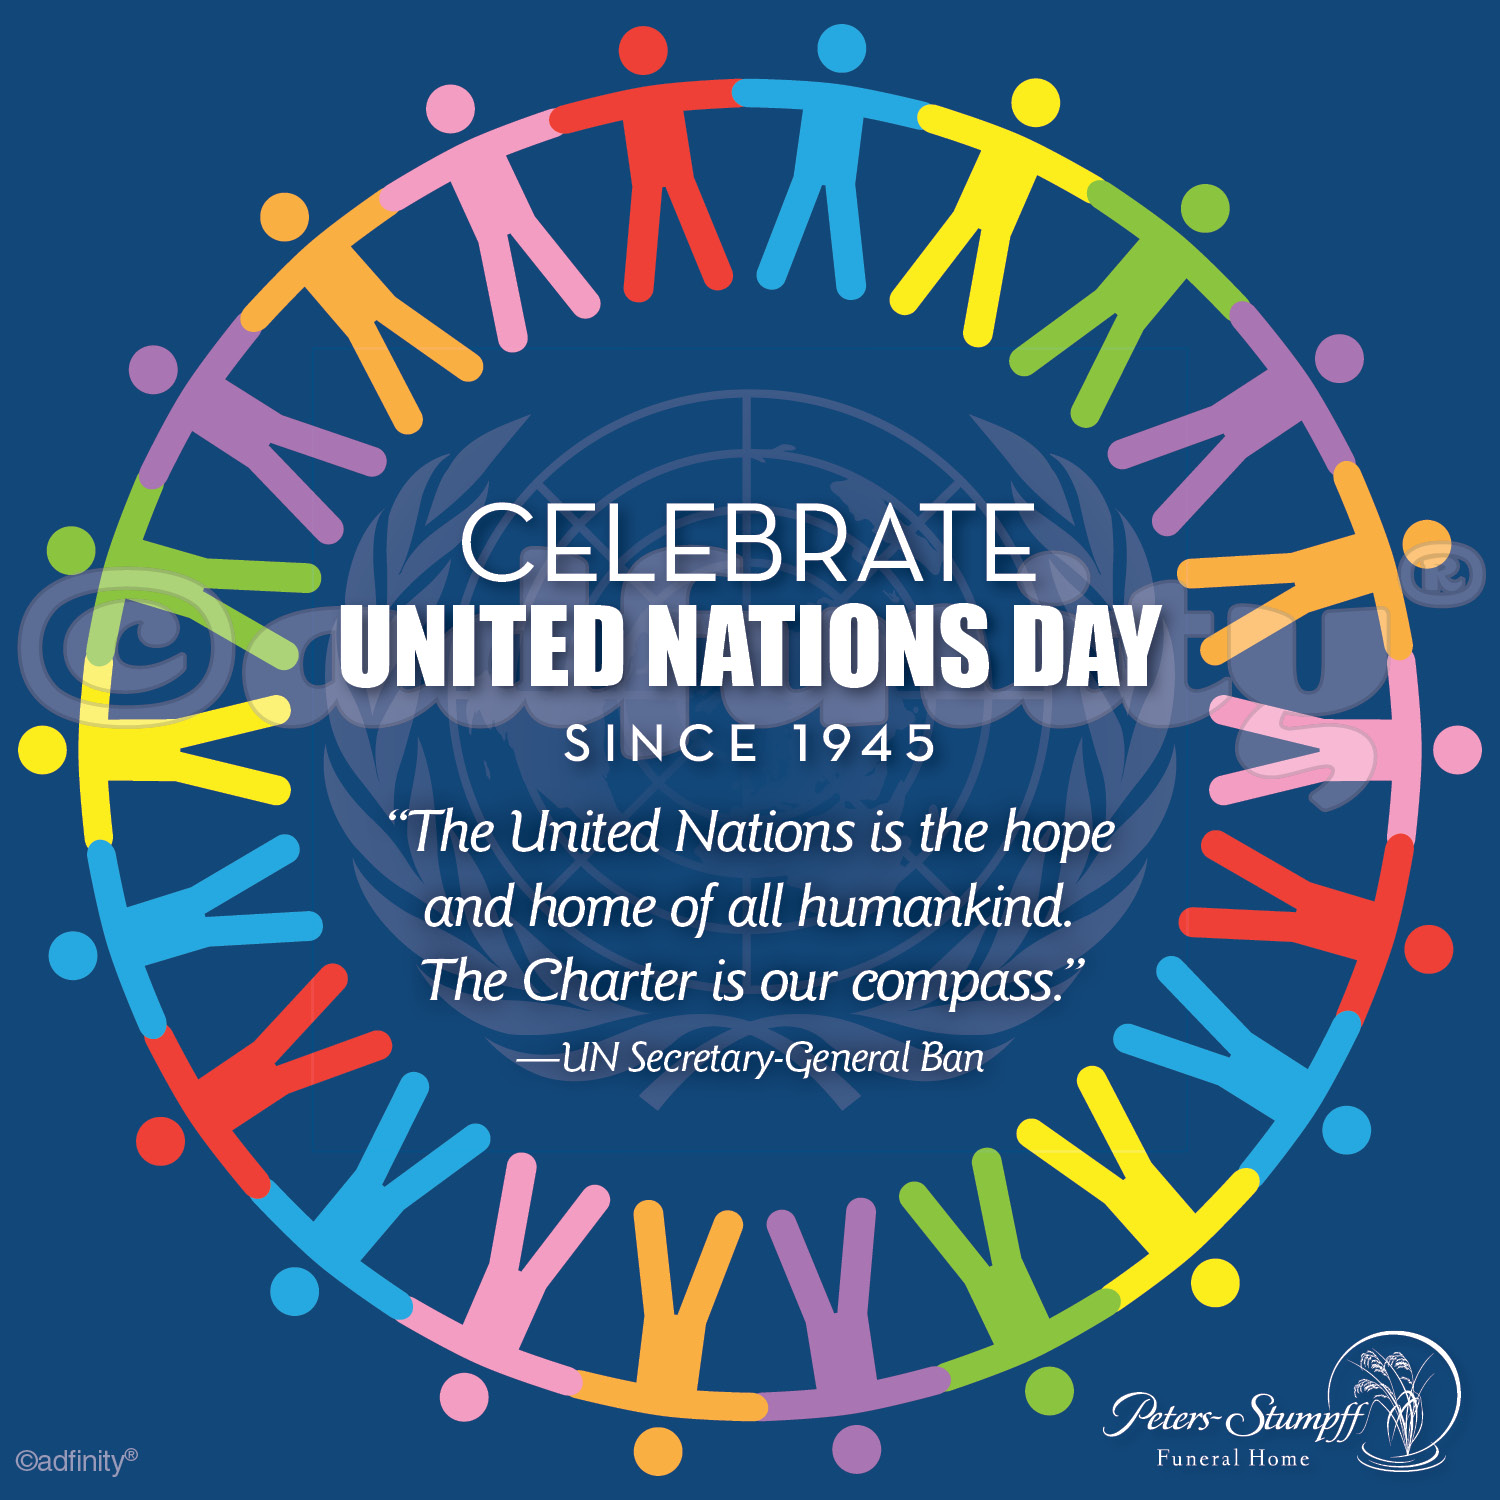 Celebrate United Nations Day (Facebook) - adfinity